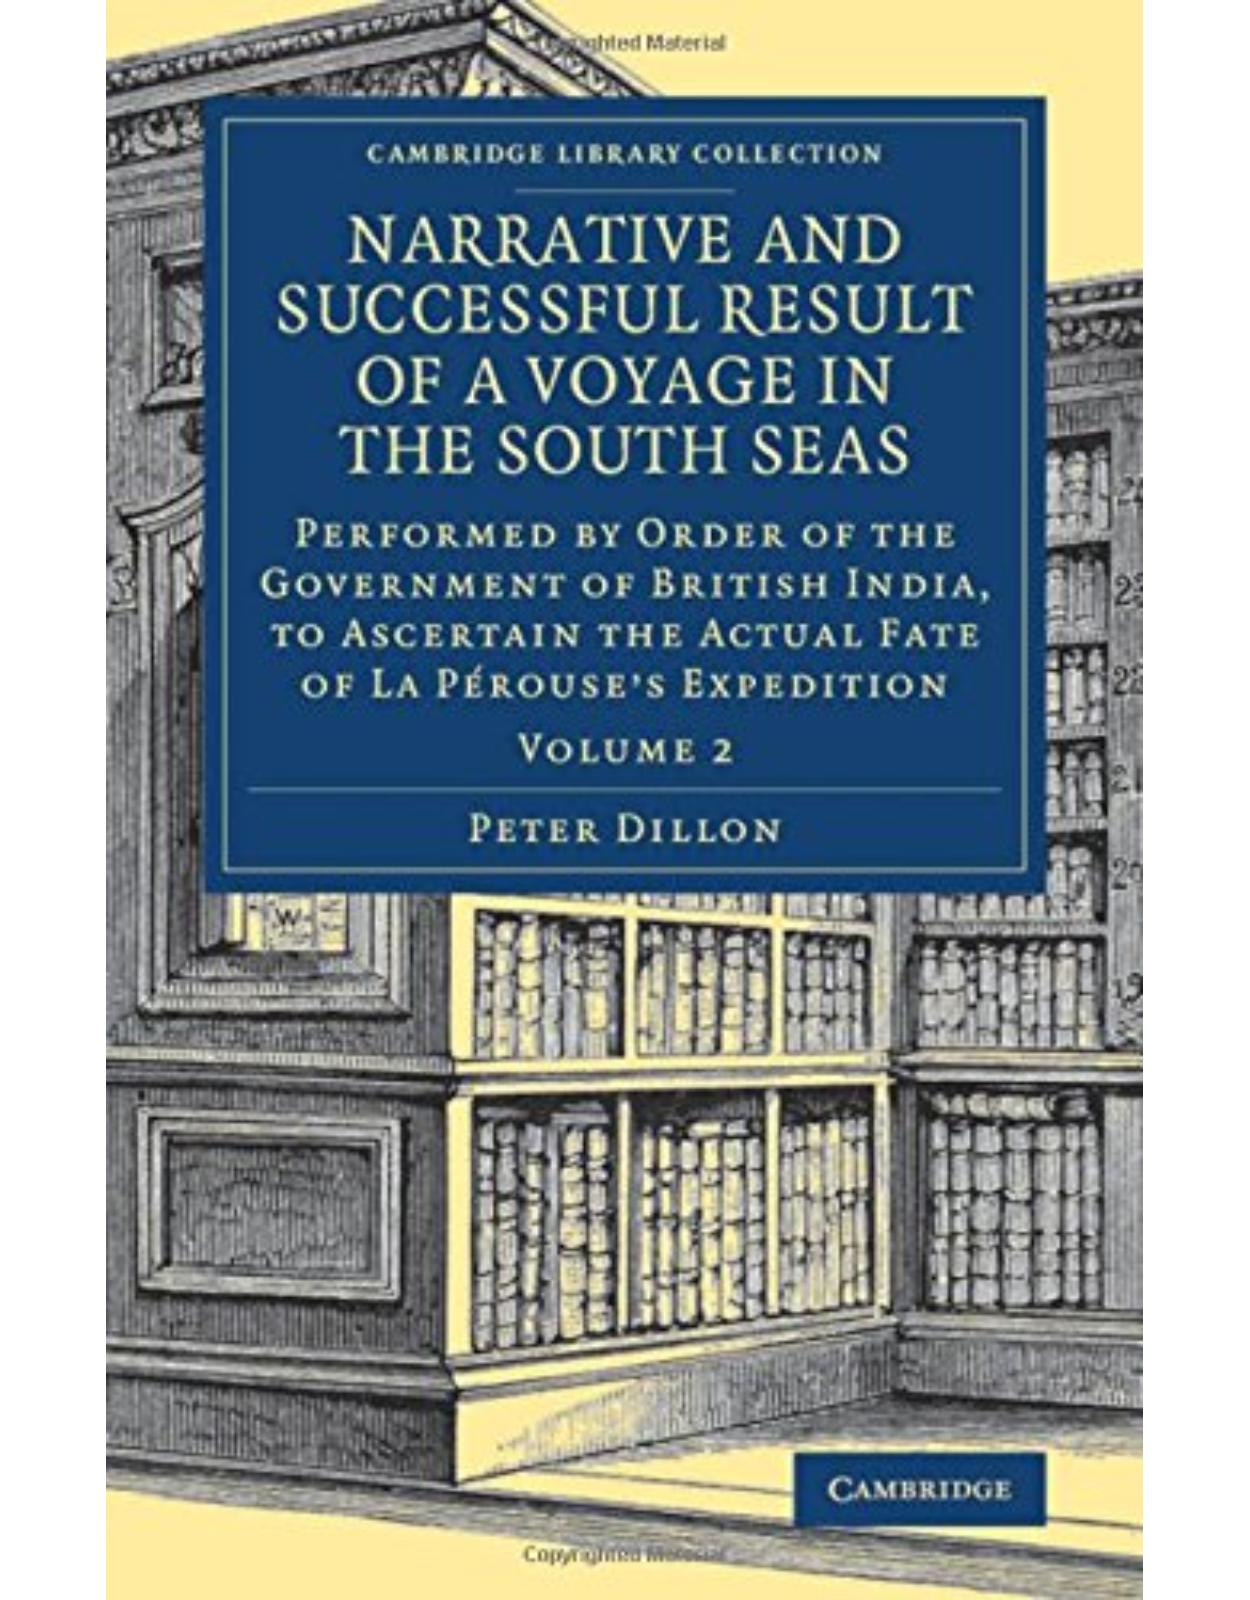 Narrative and Successful Result of a Voyage in the South Seas 2 Volume Set: Narrative and Successful Result of a Voyage in the South Seas: Performed ... Library Collection - Maritime Exploration)